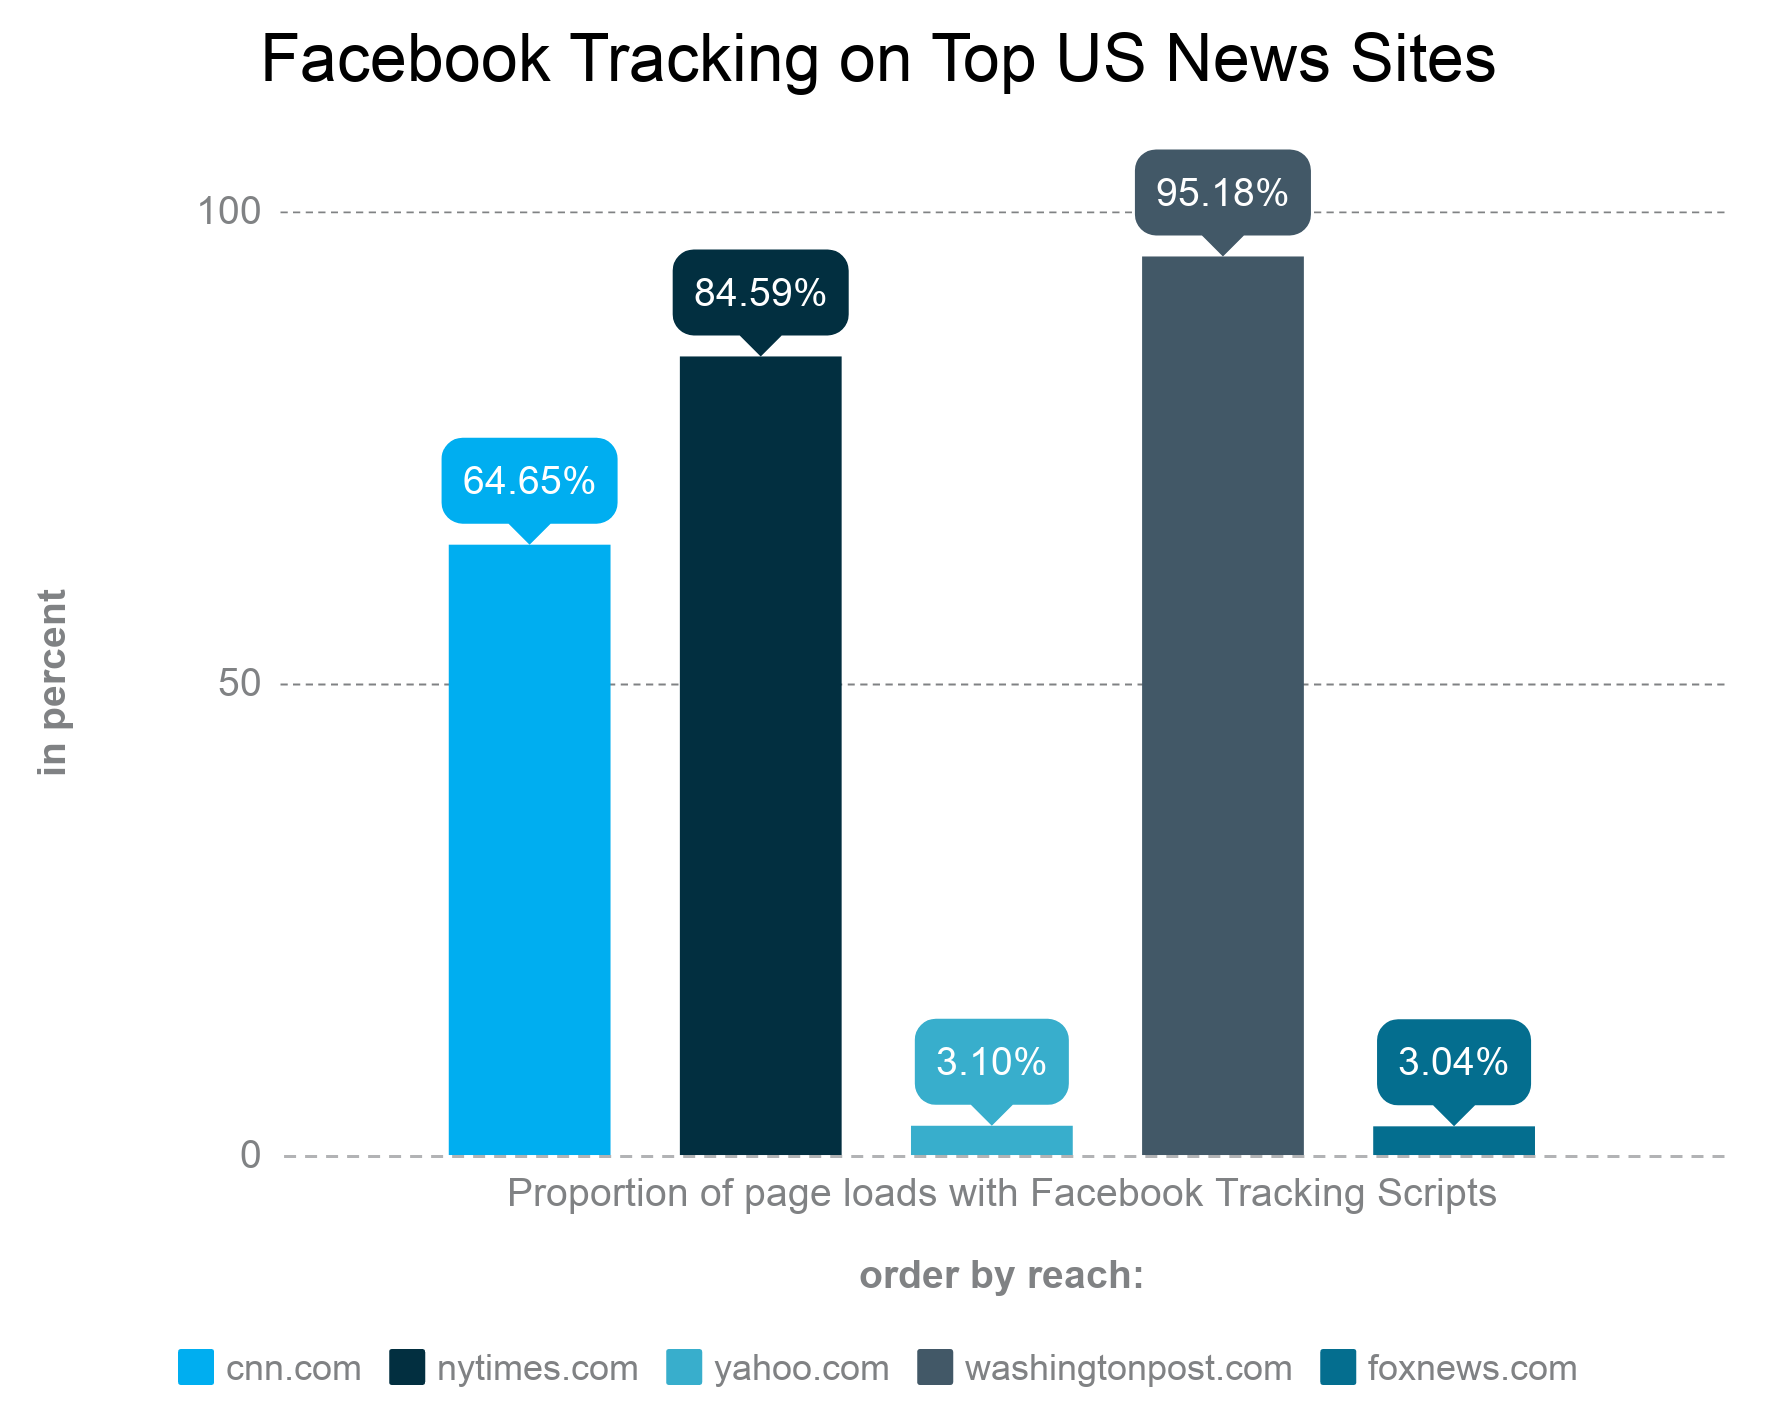 News publishers allow Facebook to track their users.